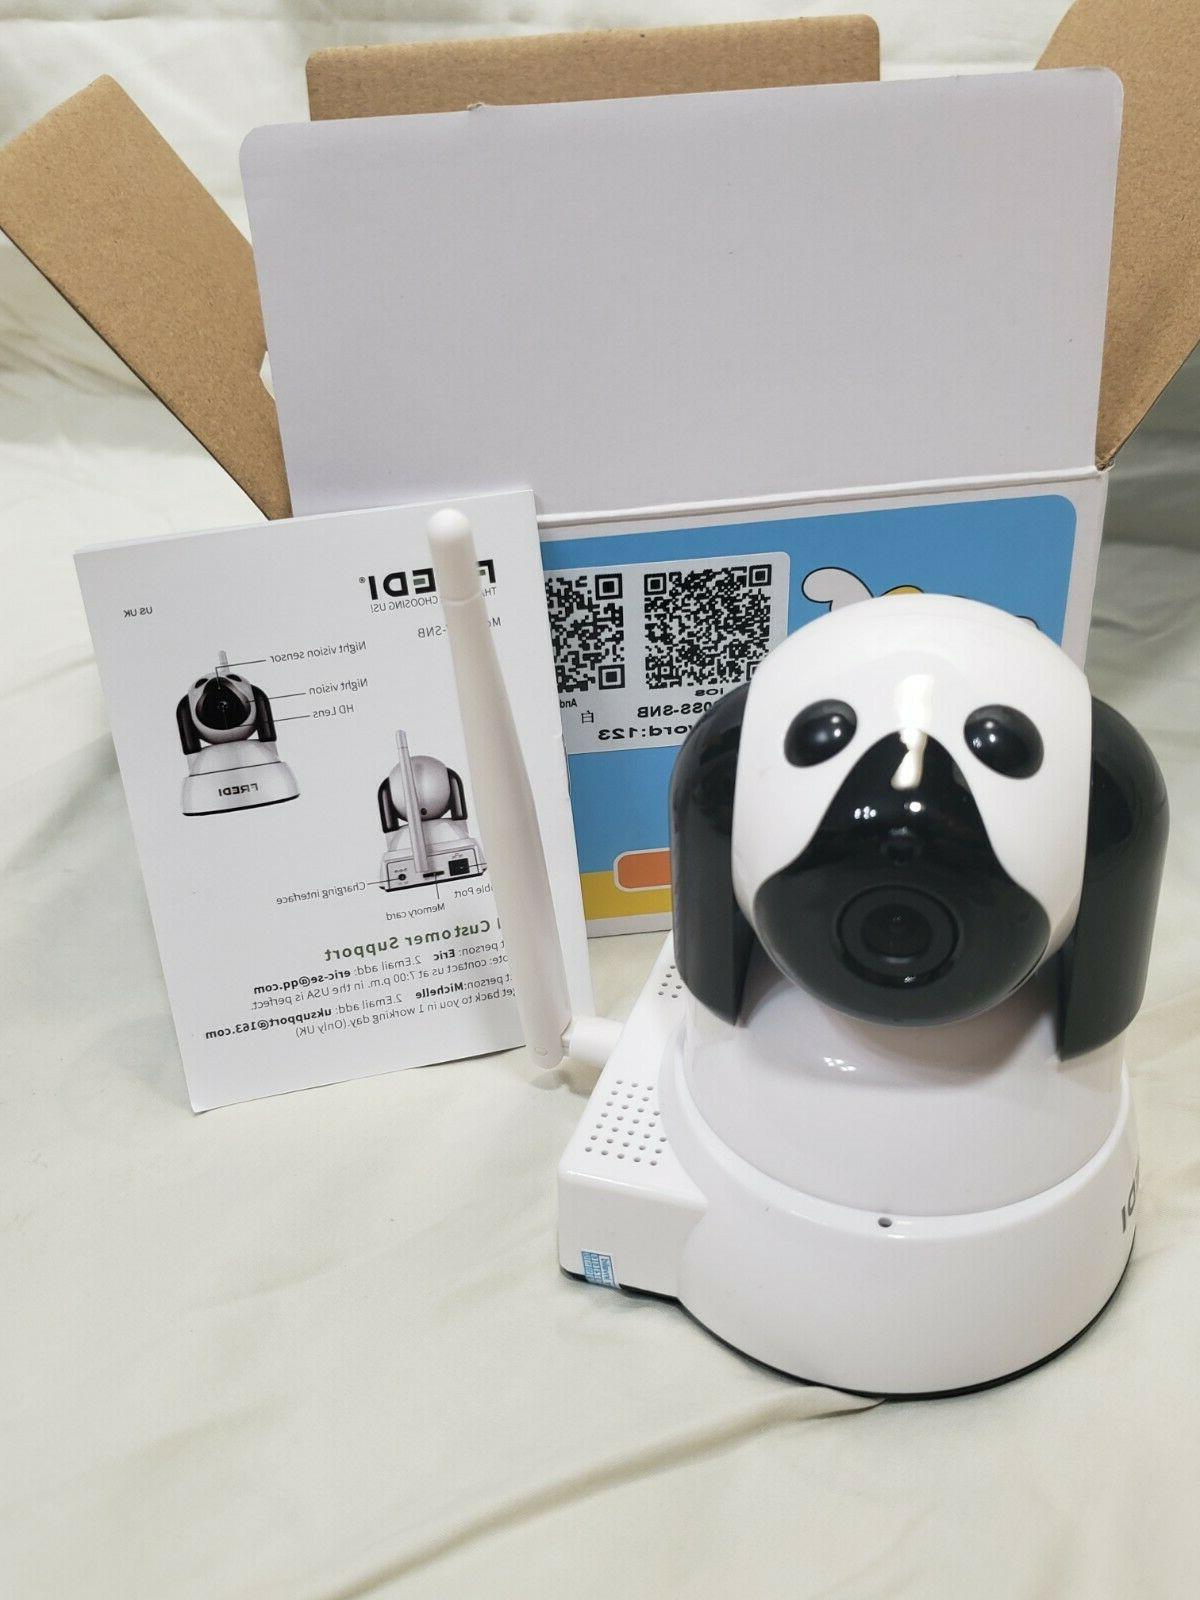 yy snb 720p wifi ip camera baby